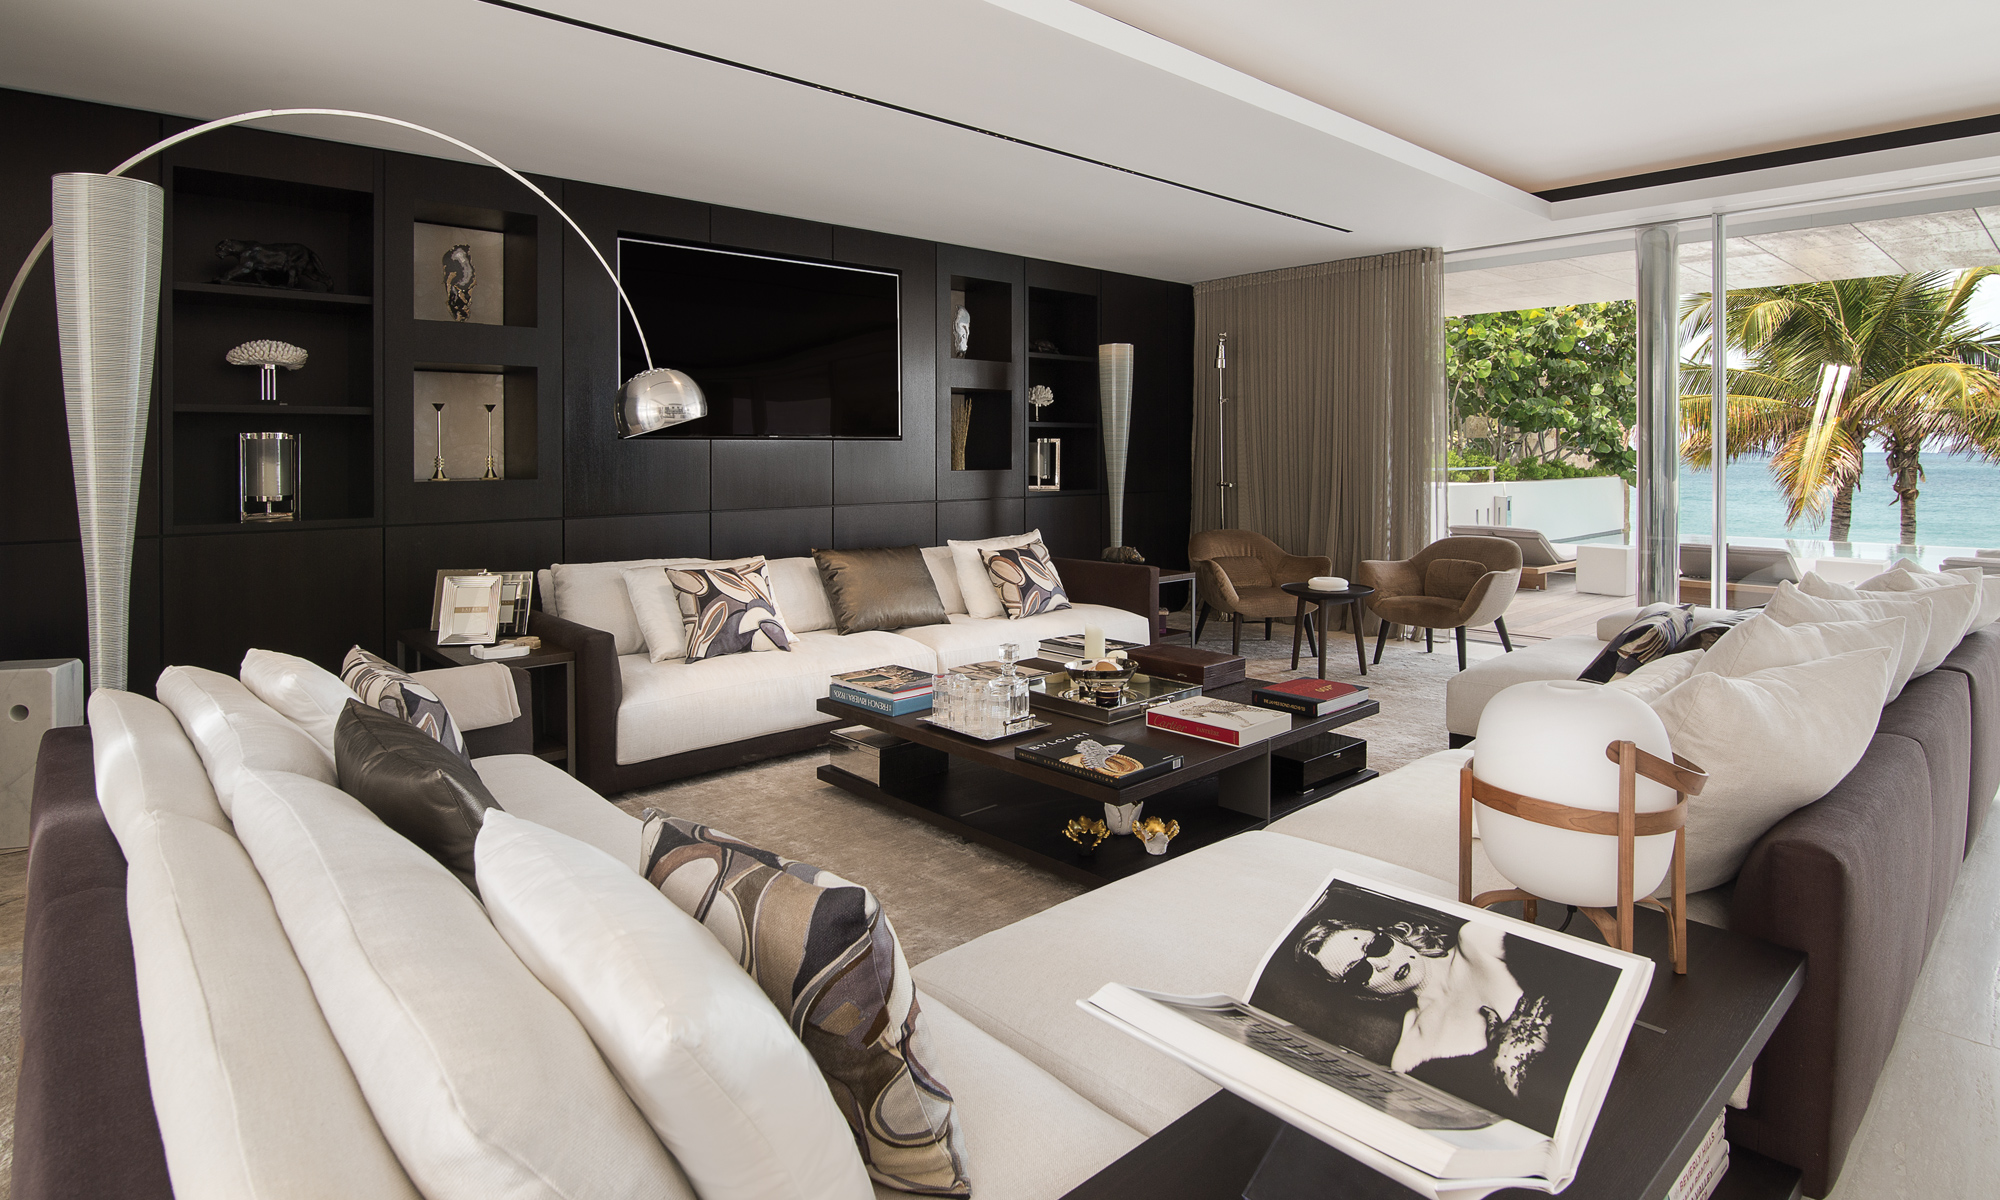 Spacious open plan living room with views of Flamands beach.